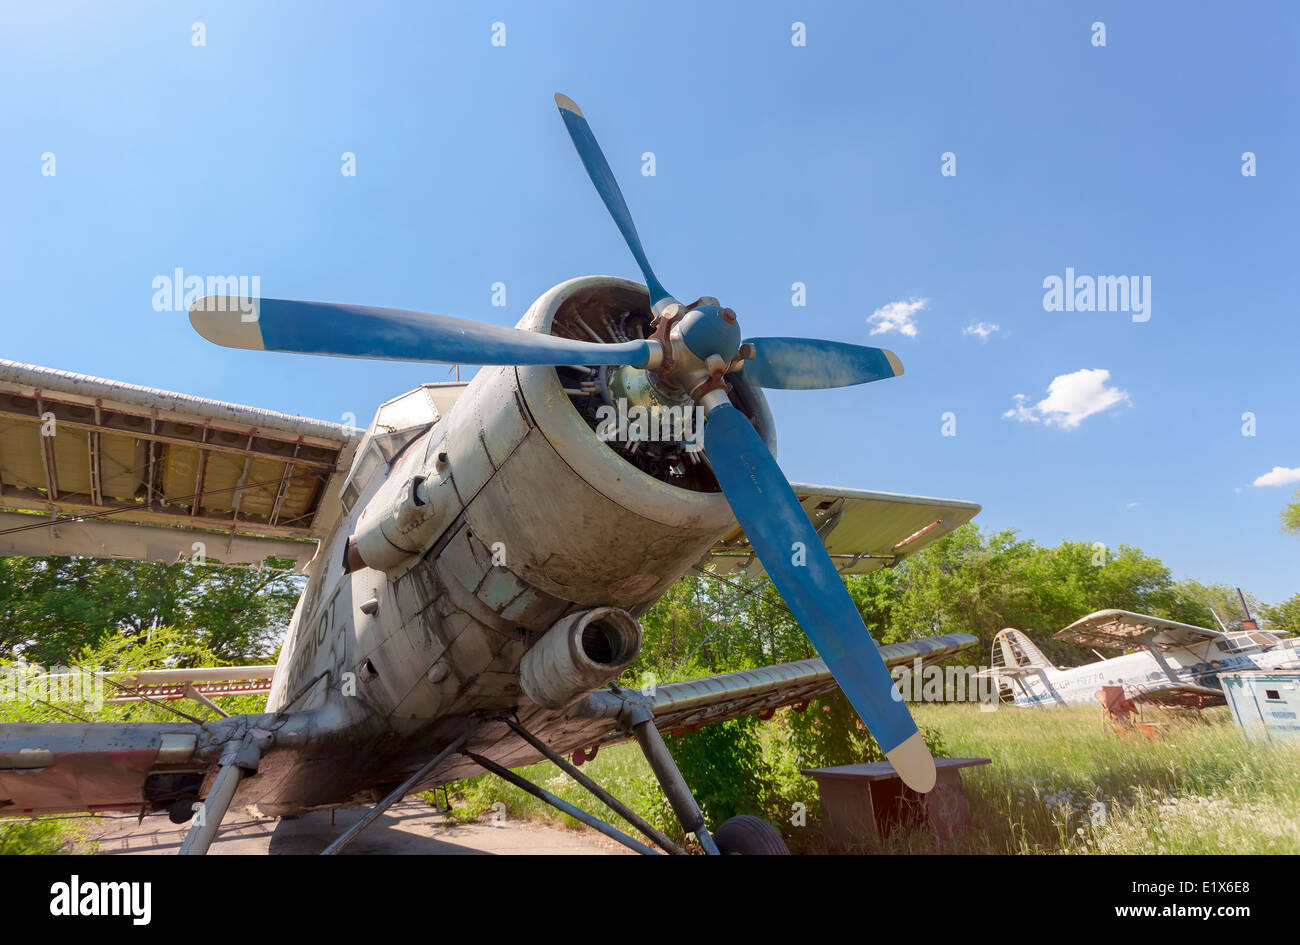 Old russian aircraft An-2 at an abandoned aerodrome in summertime. The Antonov An-2 is a Soviet mass-produced single - Stock Image